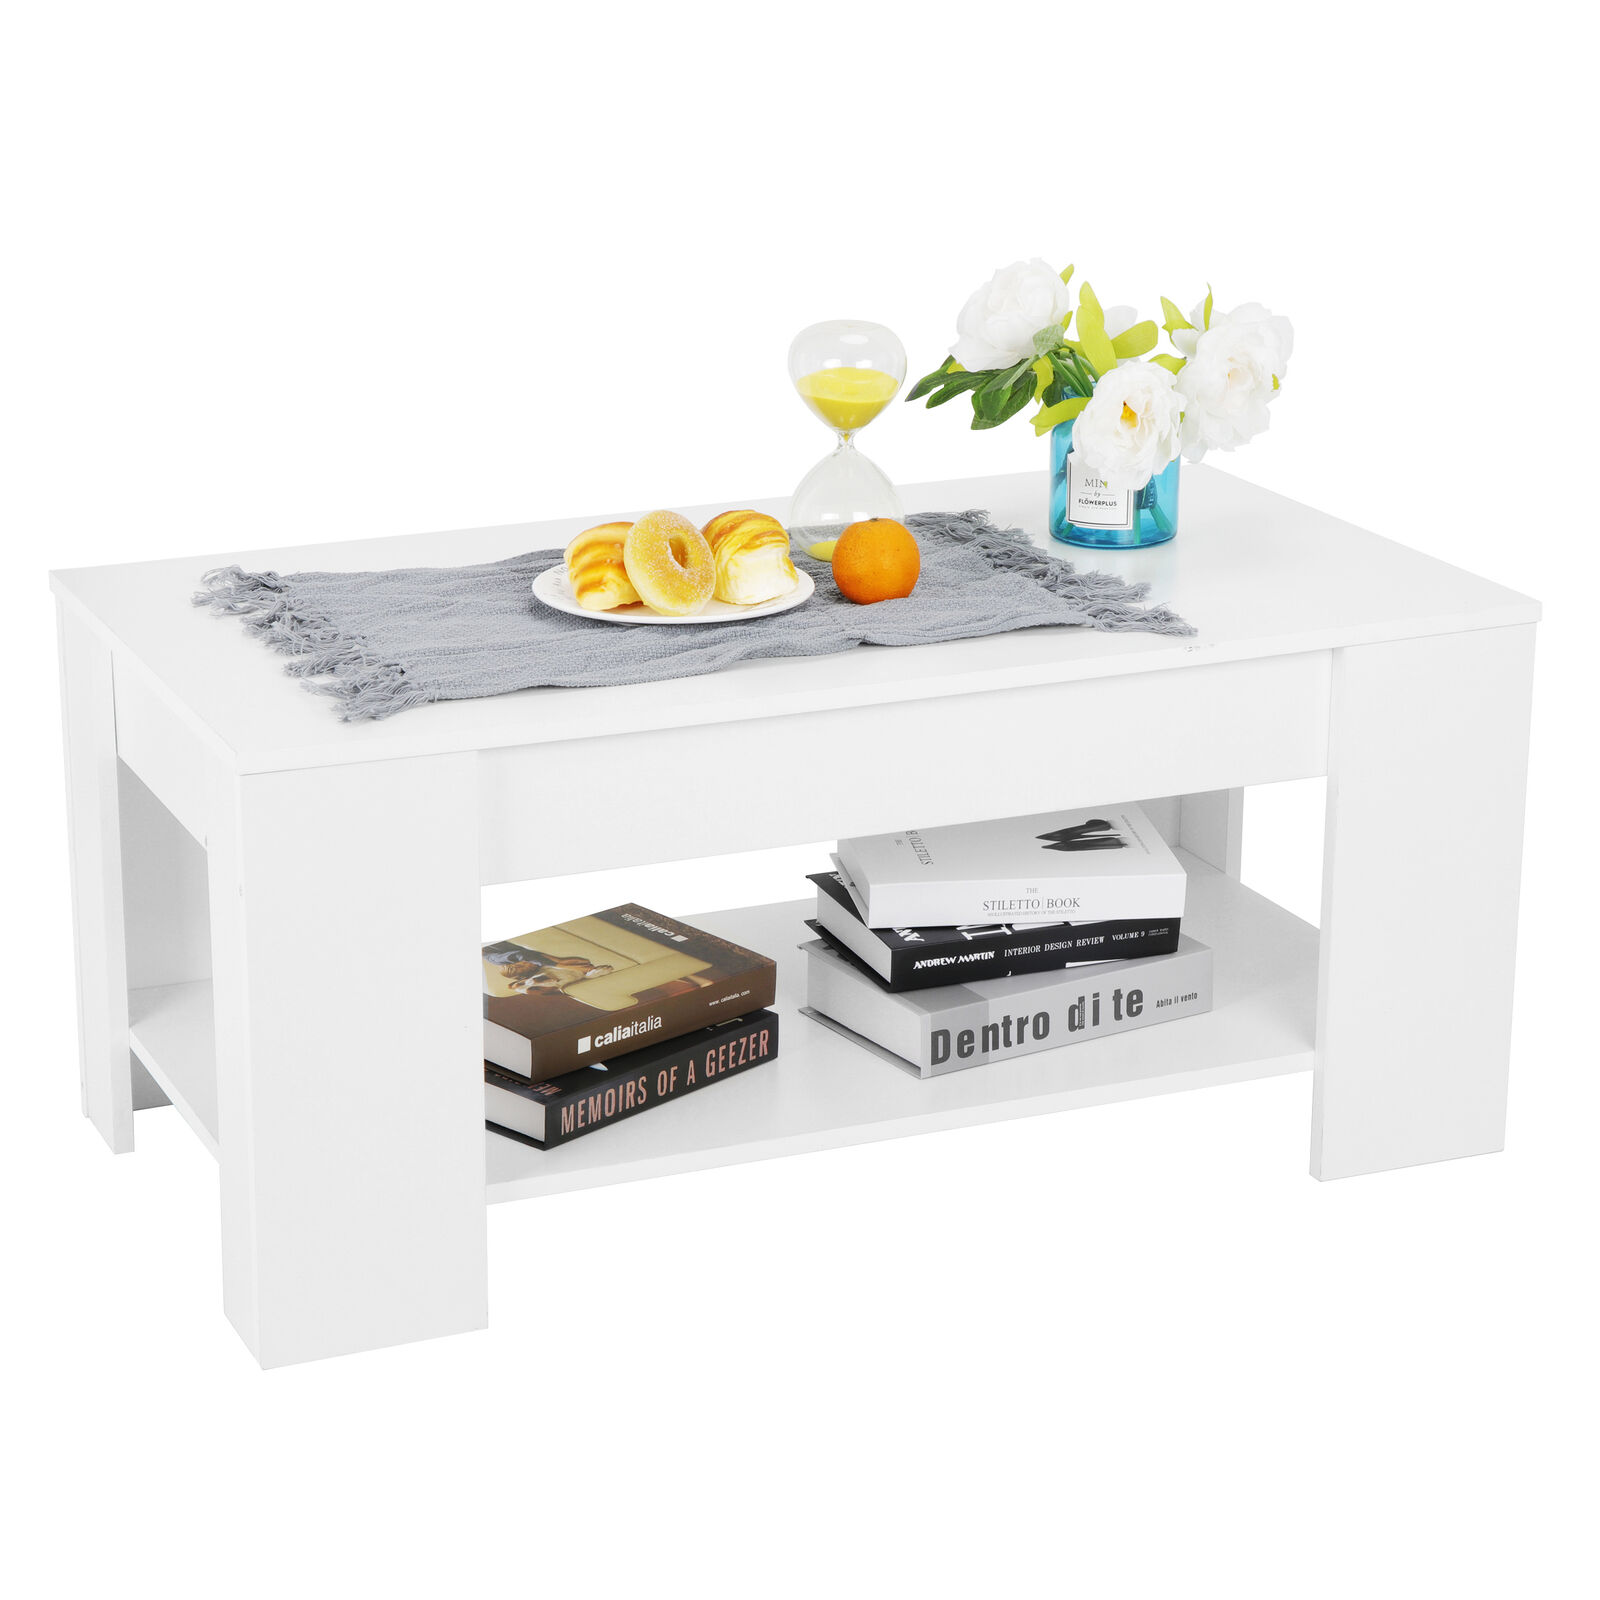 Compartment Lift up Top Tea Coffee Table Laptop Storage Shelves Living Room Furniture